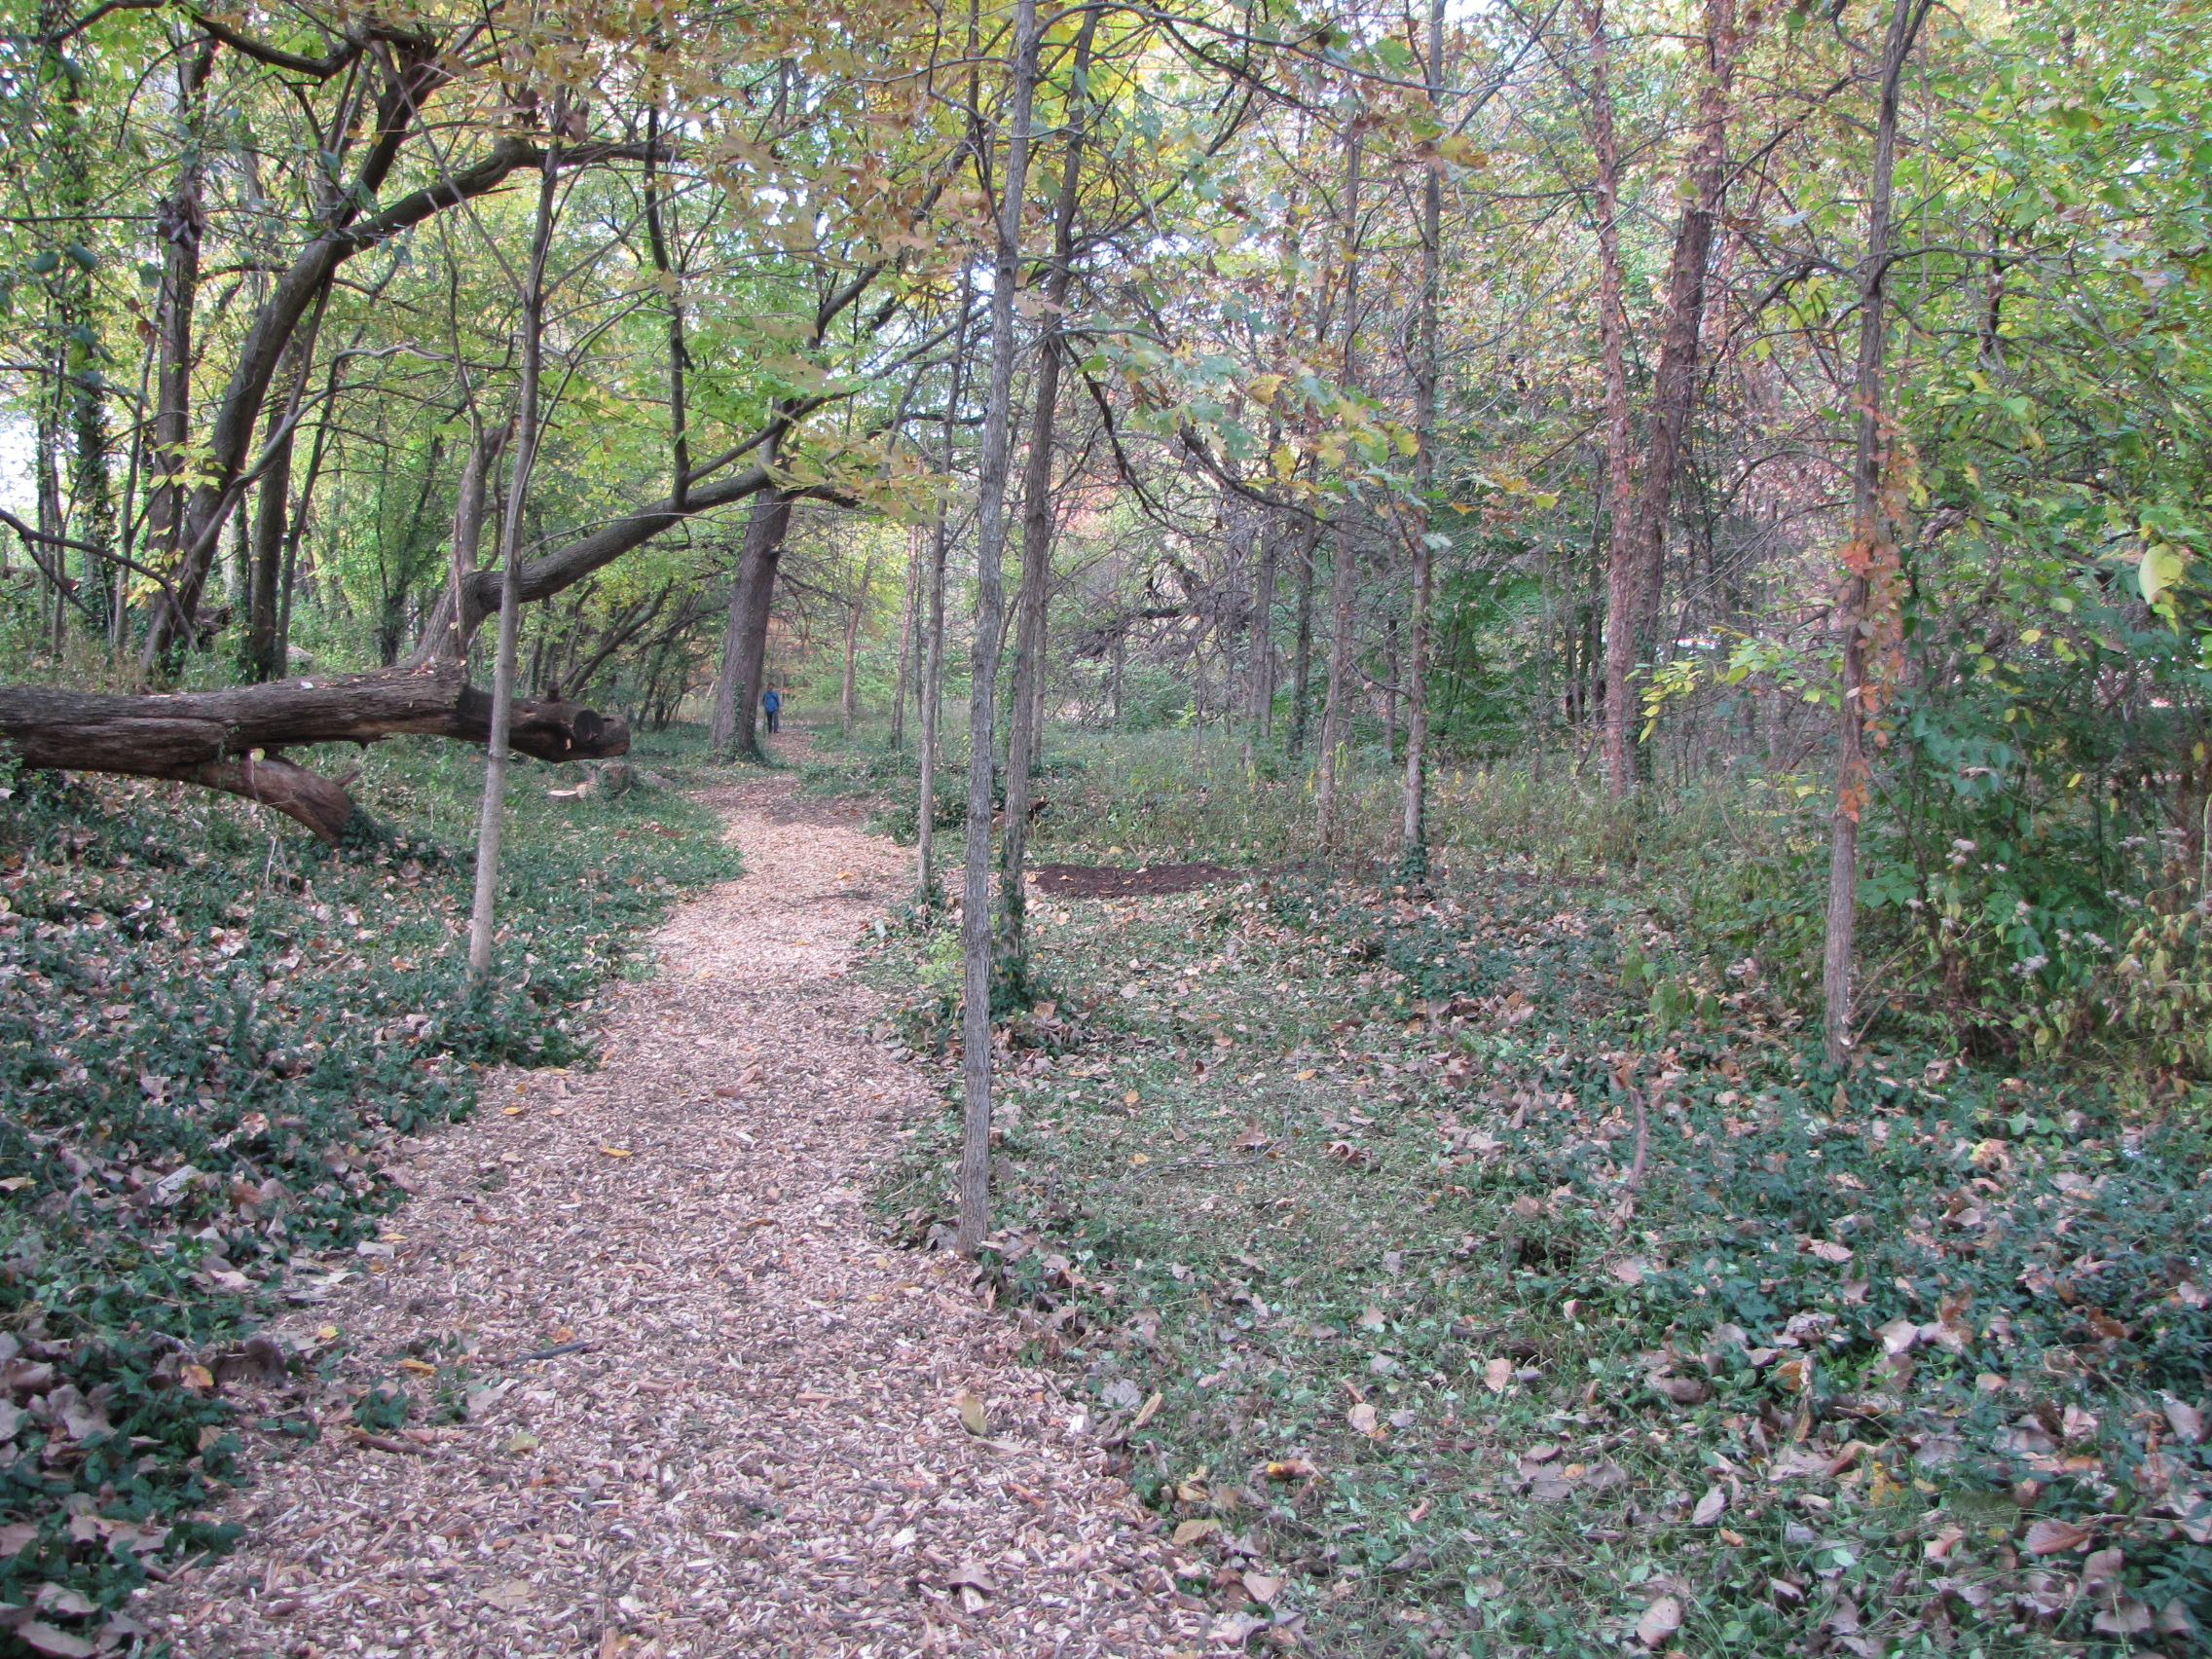 A view of the new trails